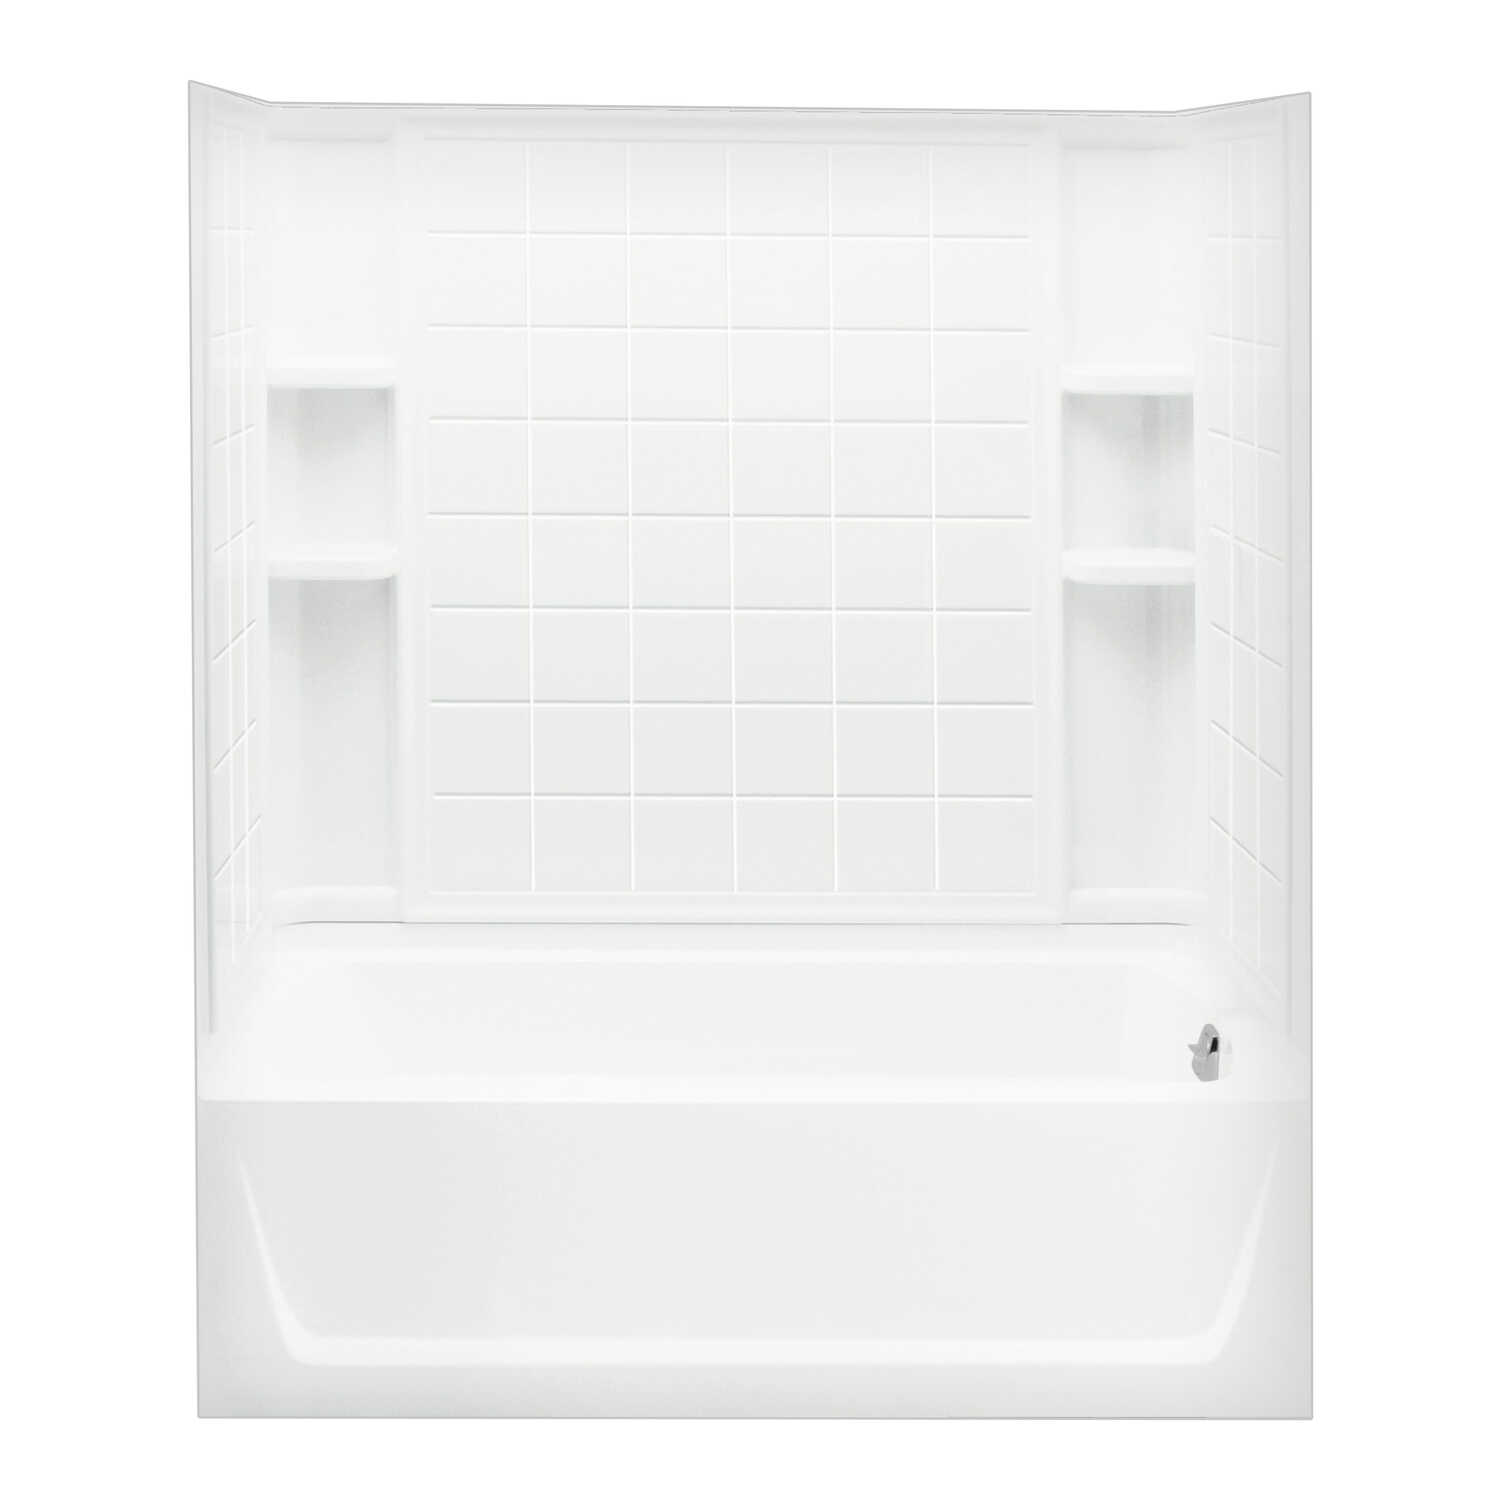 Sterling  Ensemble  55-1/4 in. H x 33-1/4 in. W x 60 in. L White  Bathtub Wall Kit  Three Piece  Rev